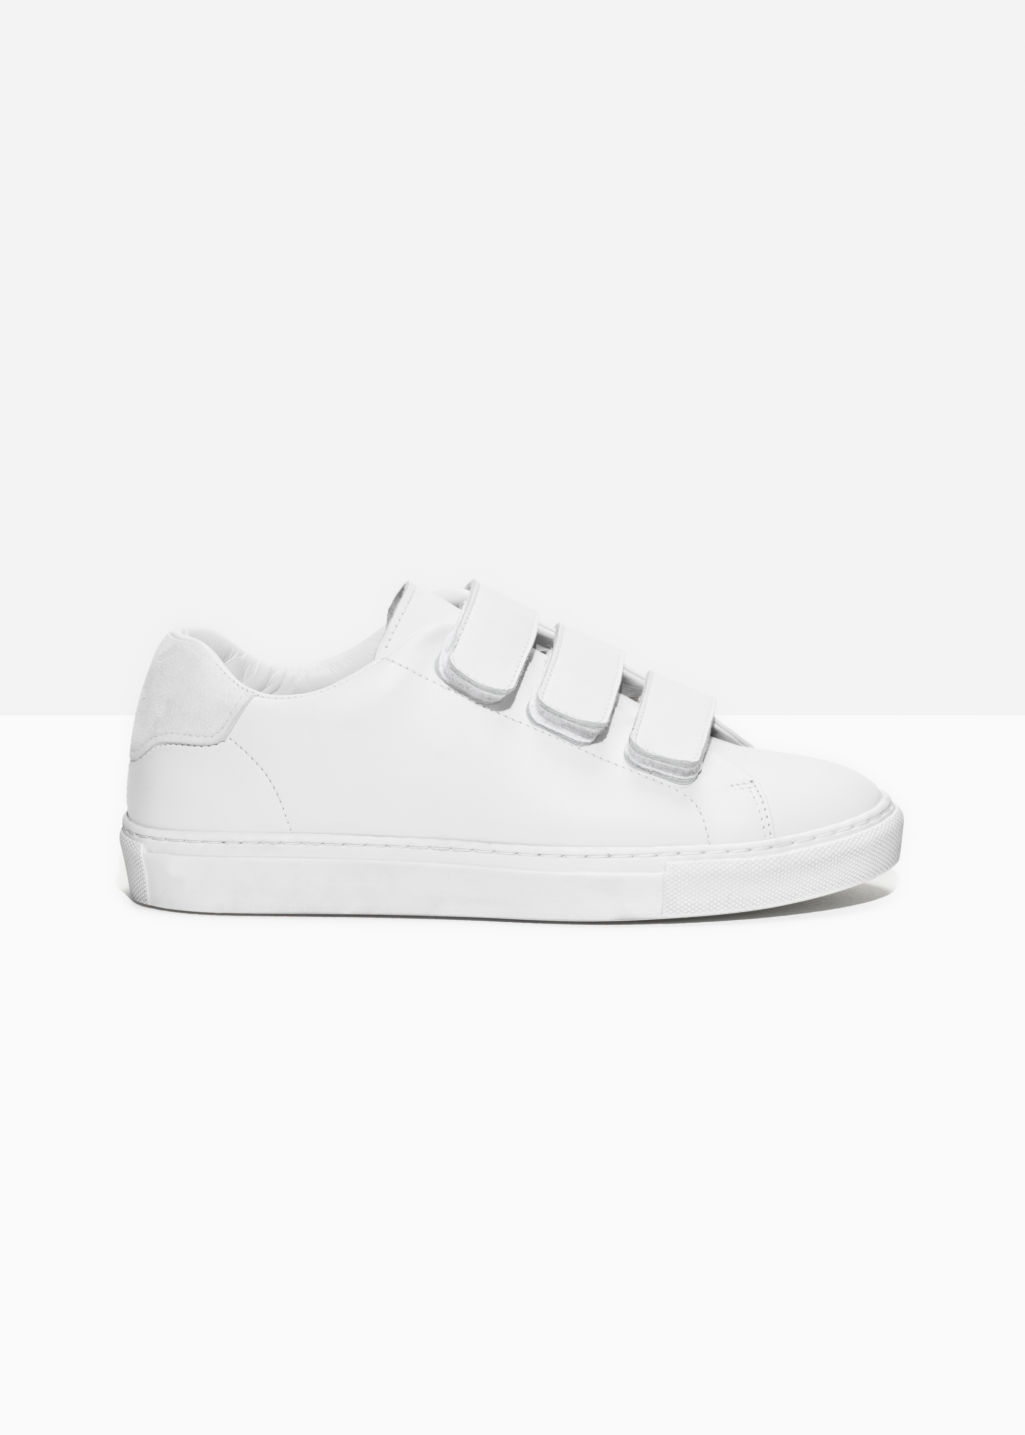 & OTHER STORIES Scratch Strap Patent Leather Sneaker zIRxlP